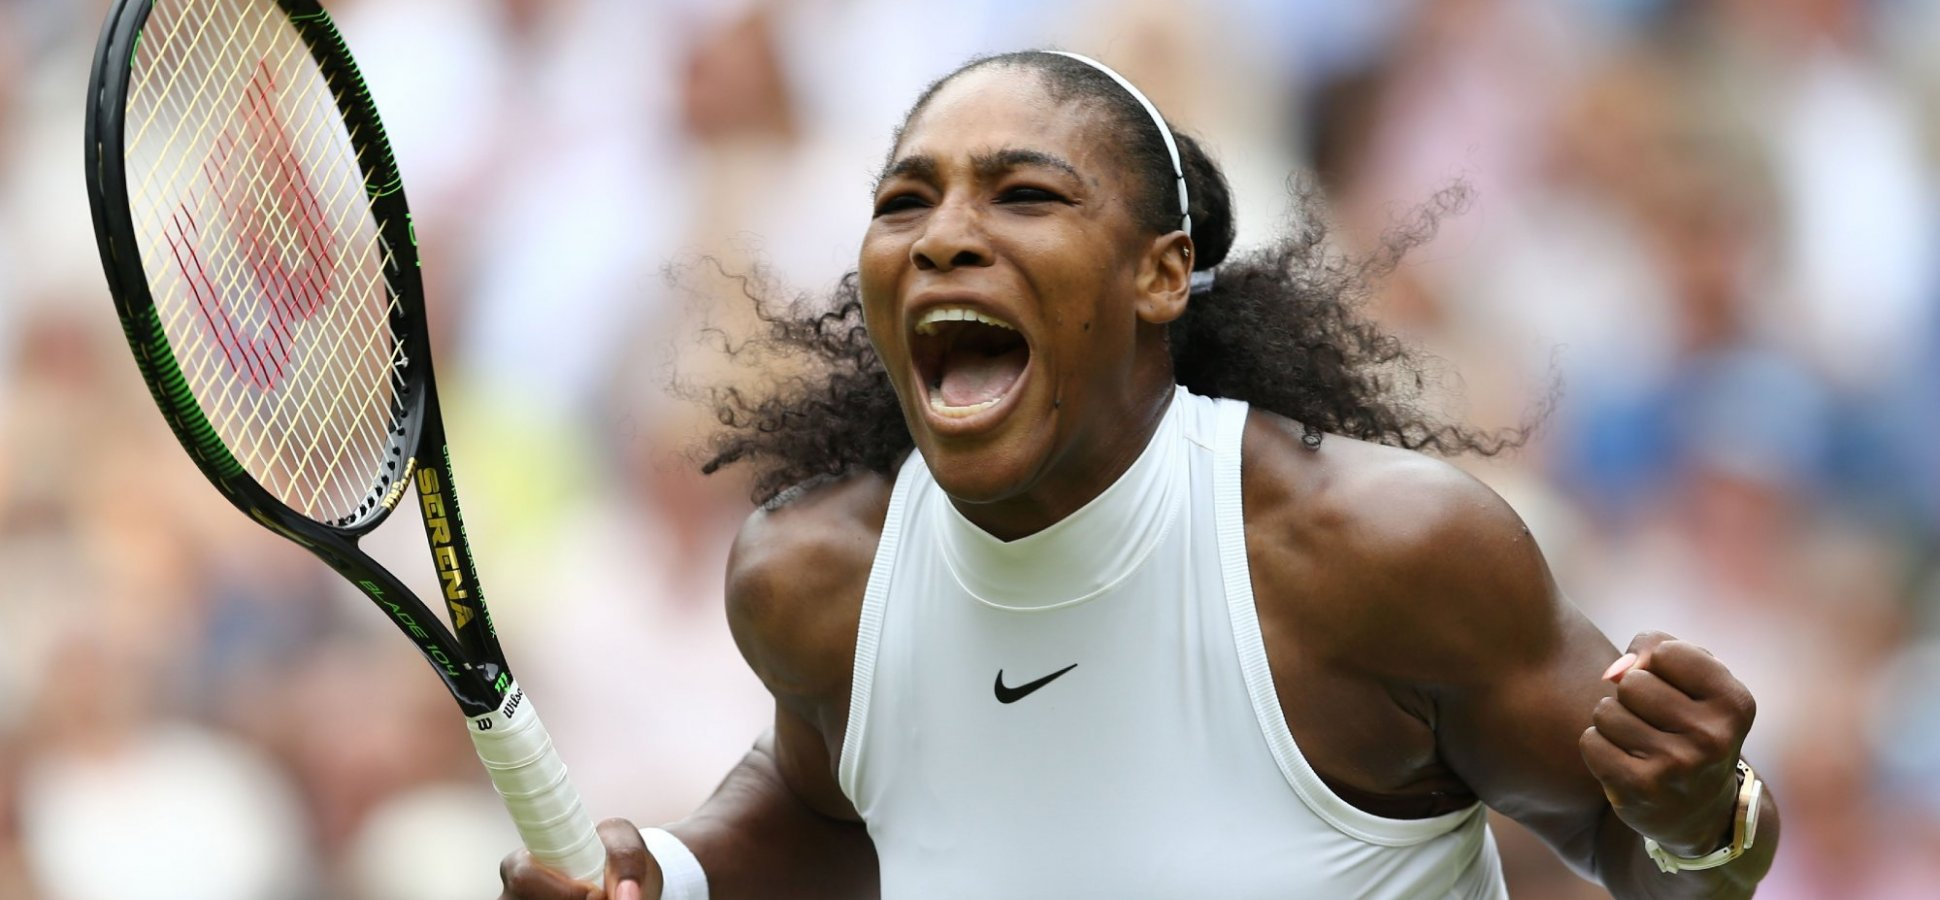 17 Serena Williams Quotes That Will Inspire You to Remarkable Success 7b26e01c6